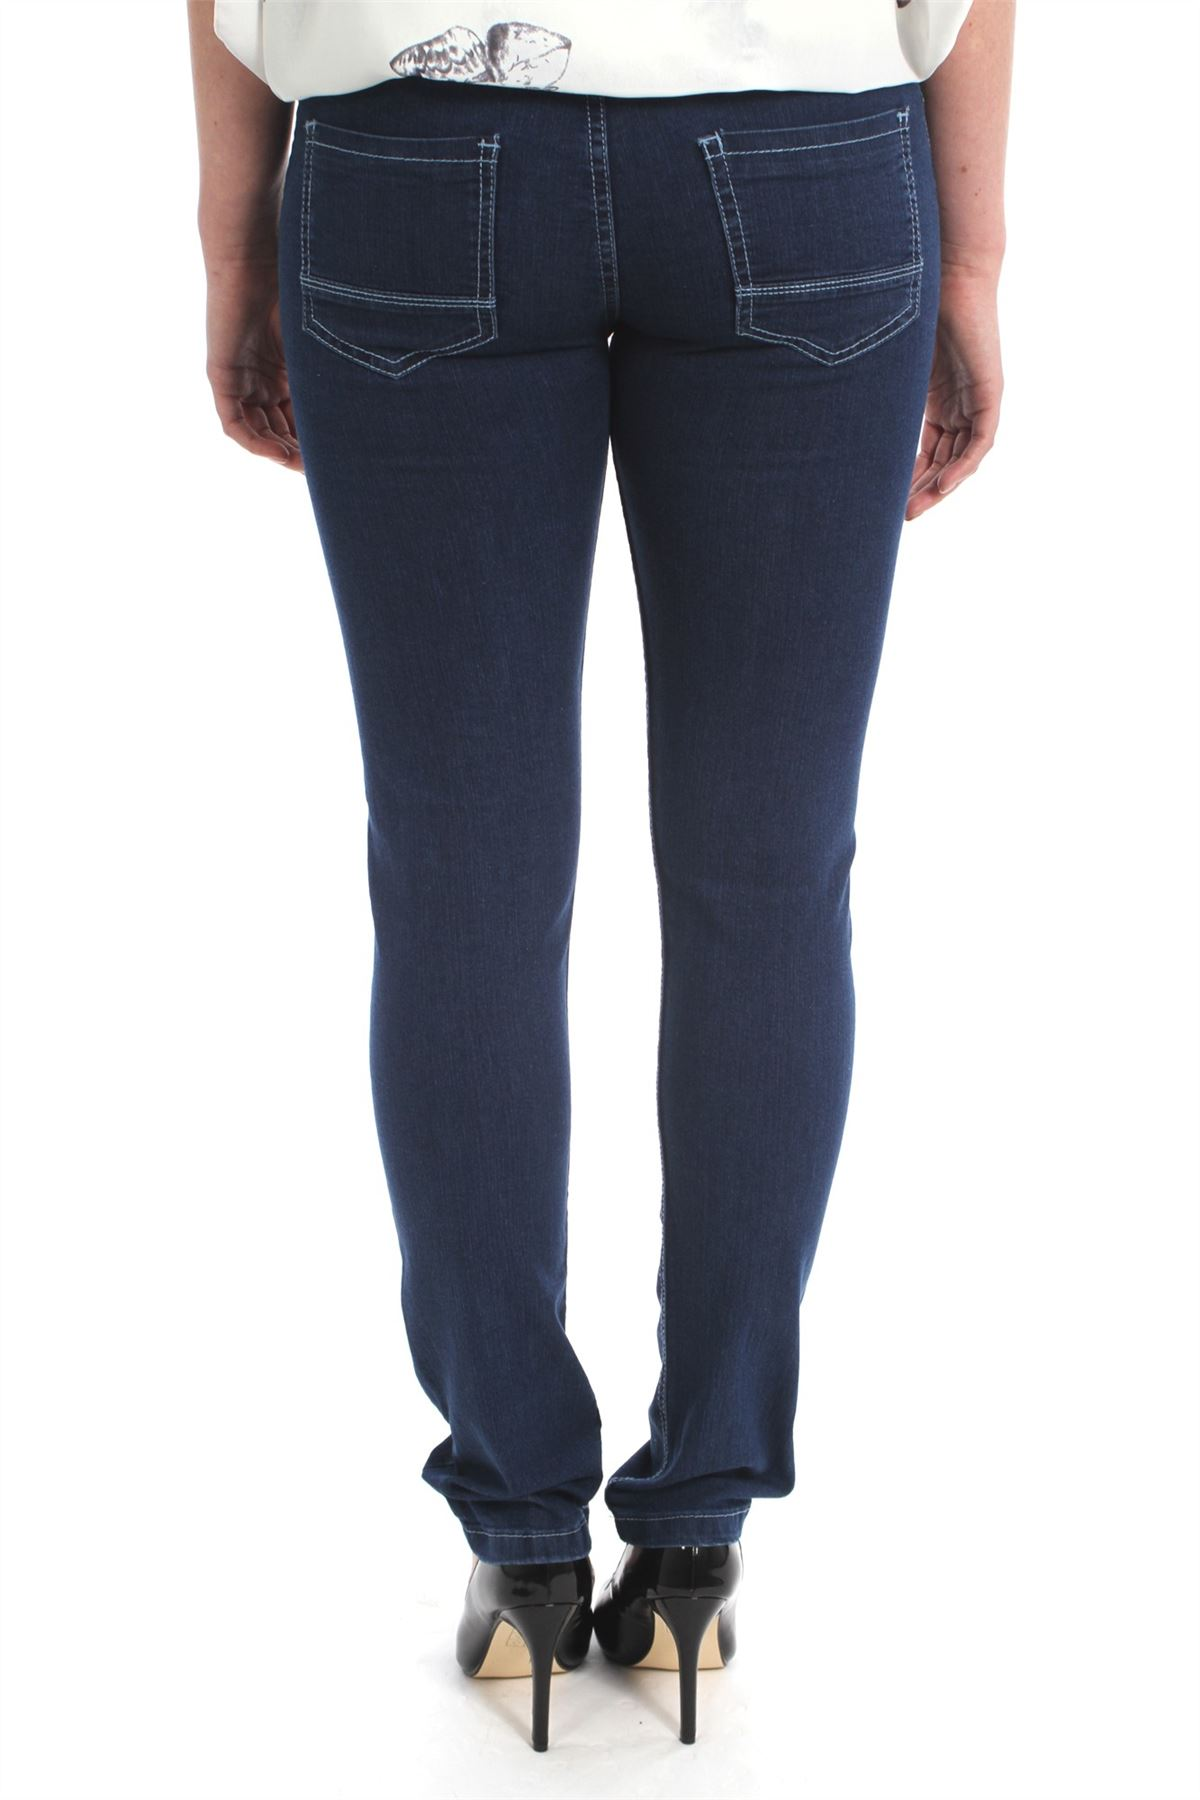 Find great deals on eBay for ladies denim trousers. Shop with confidence.